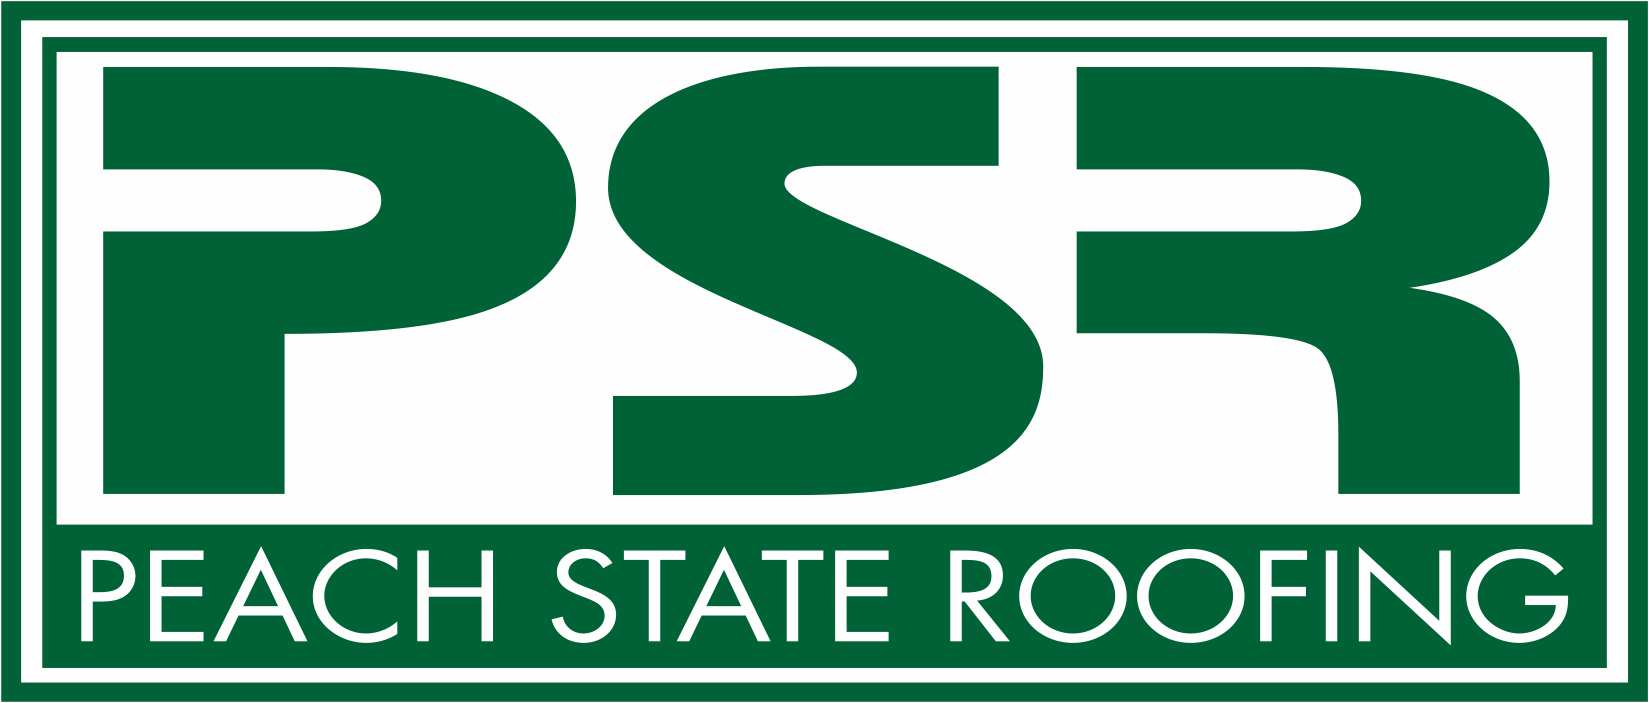 Commercial Roofing   Peach State Roofing Inc